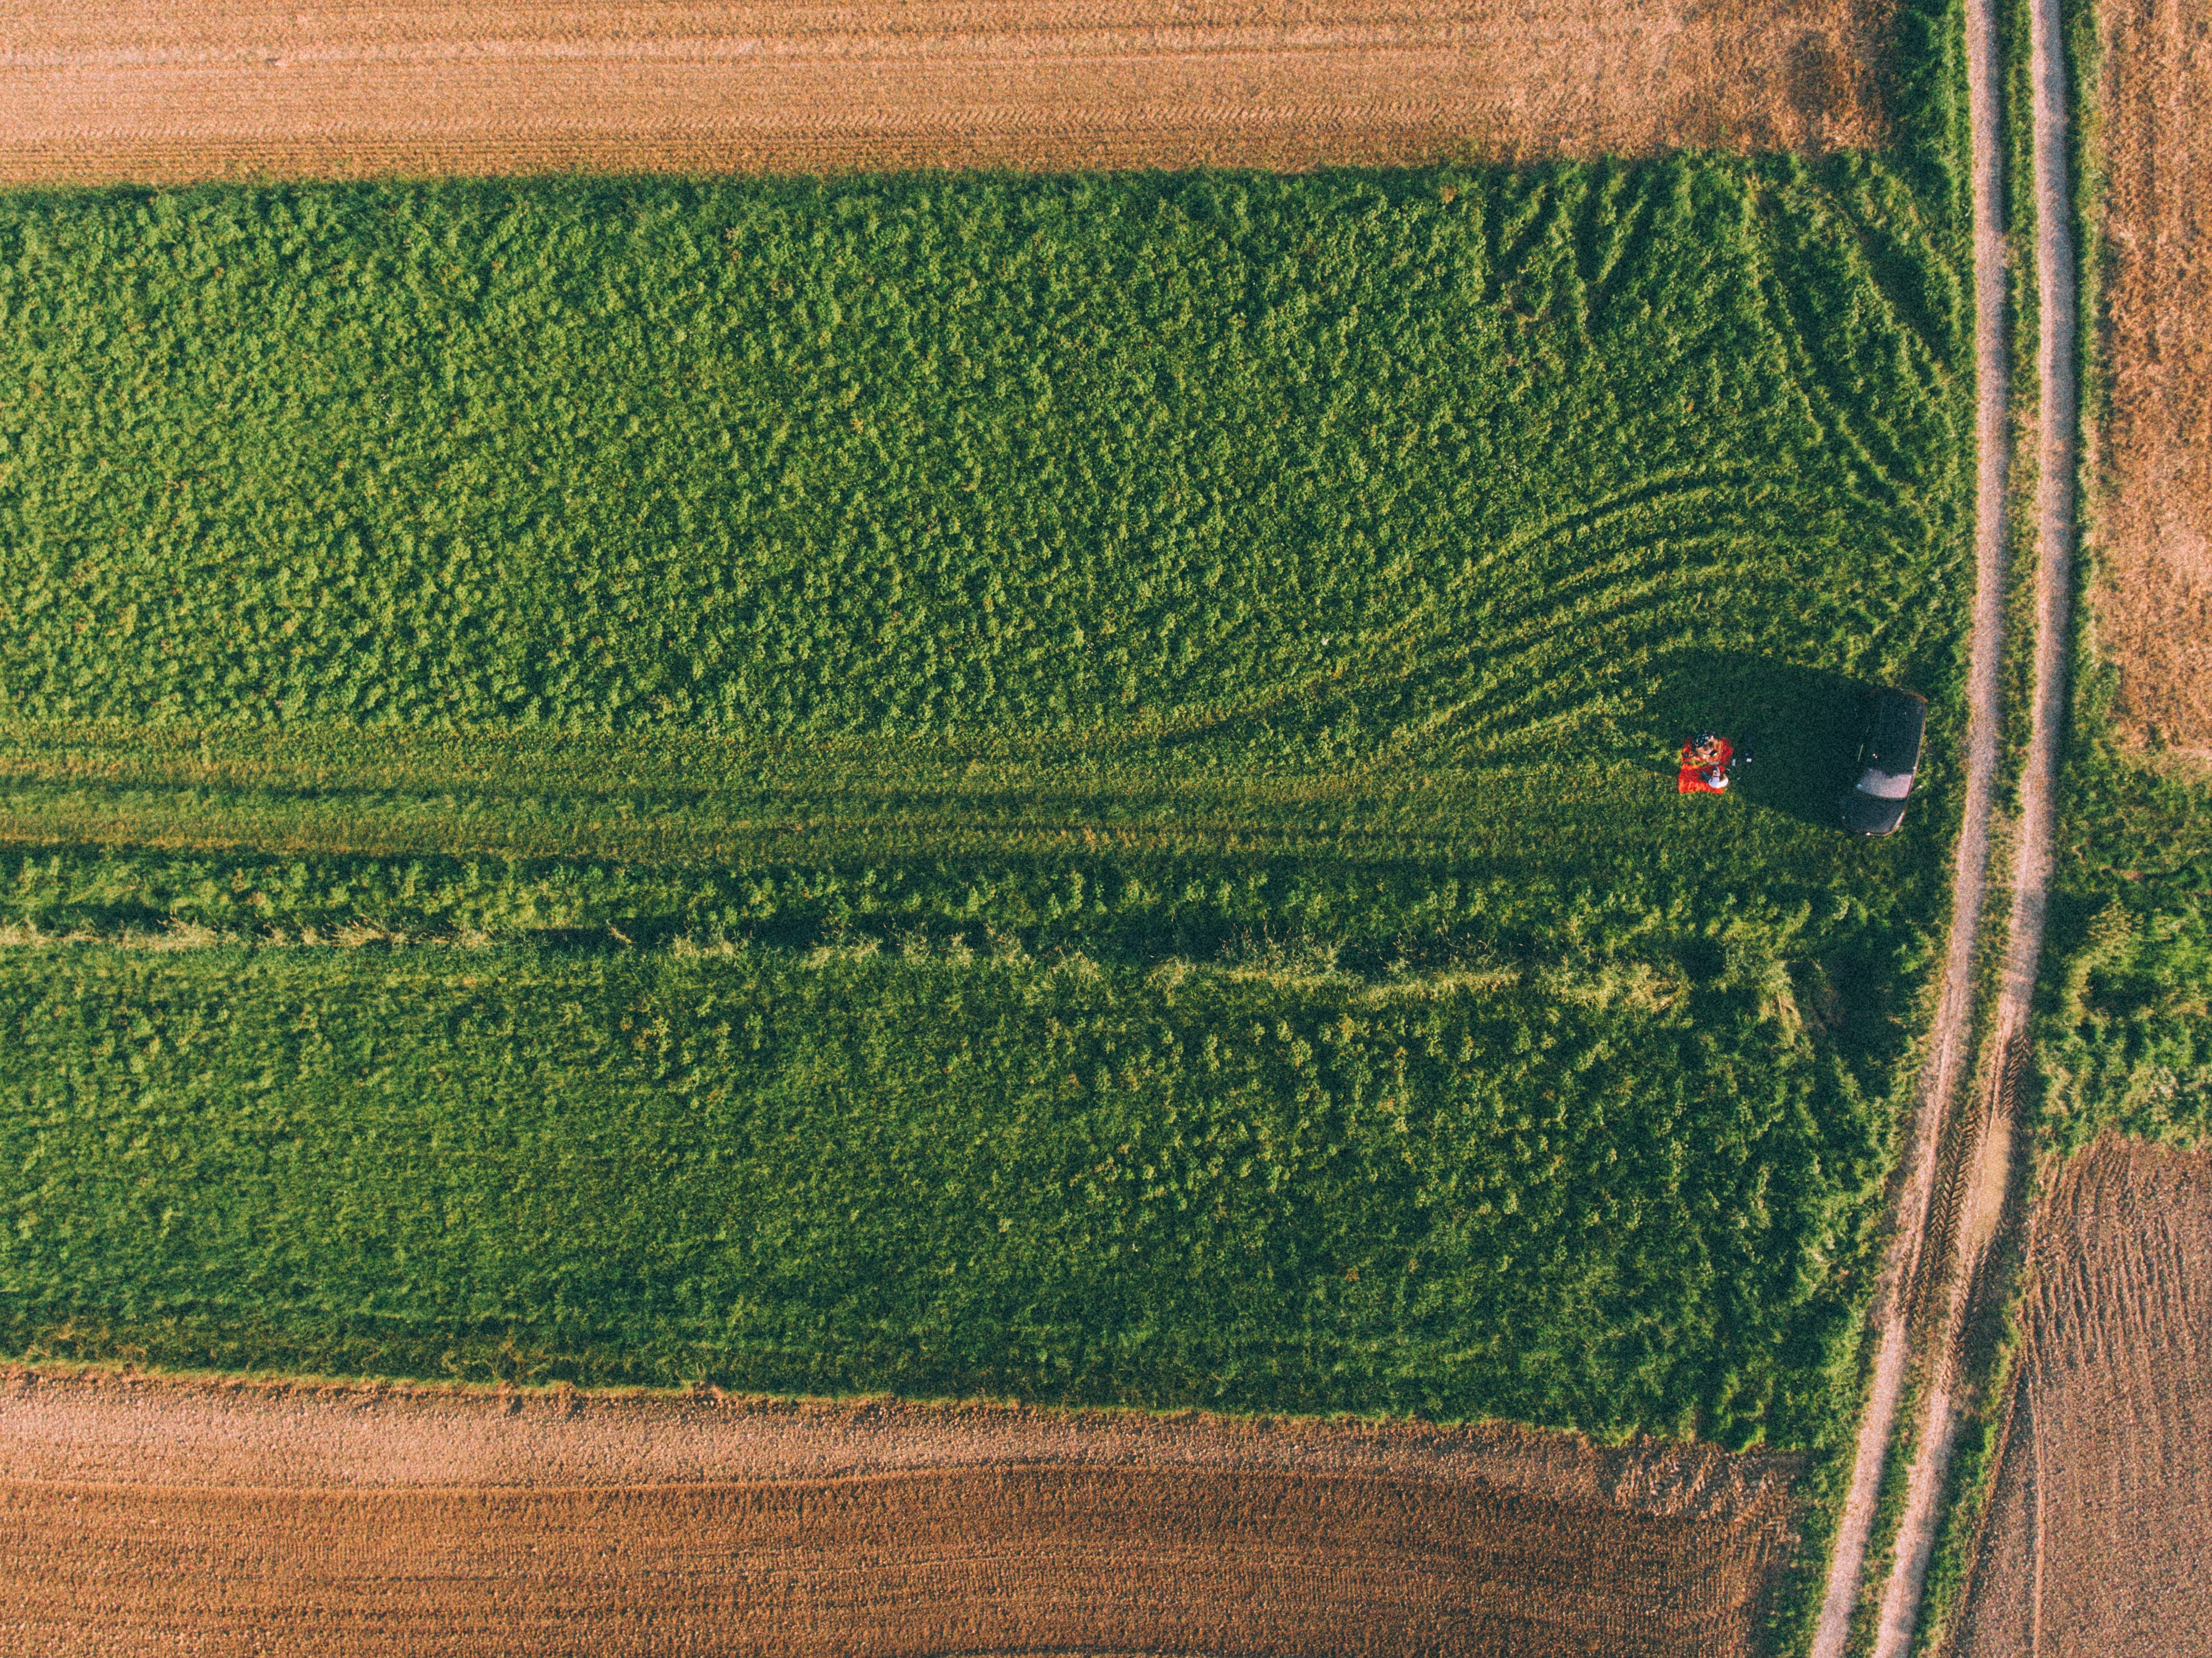 aerial photo of green plants